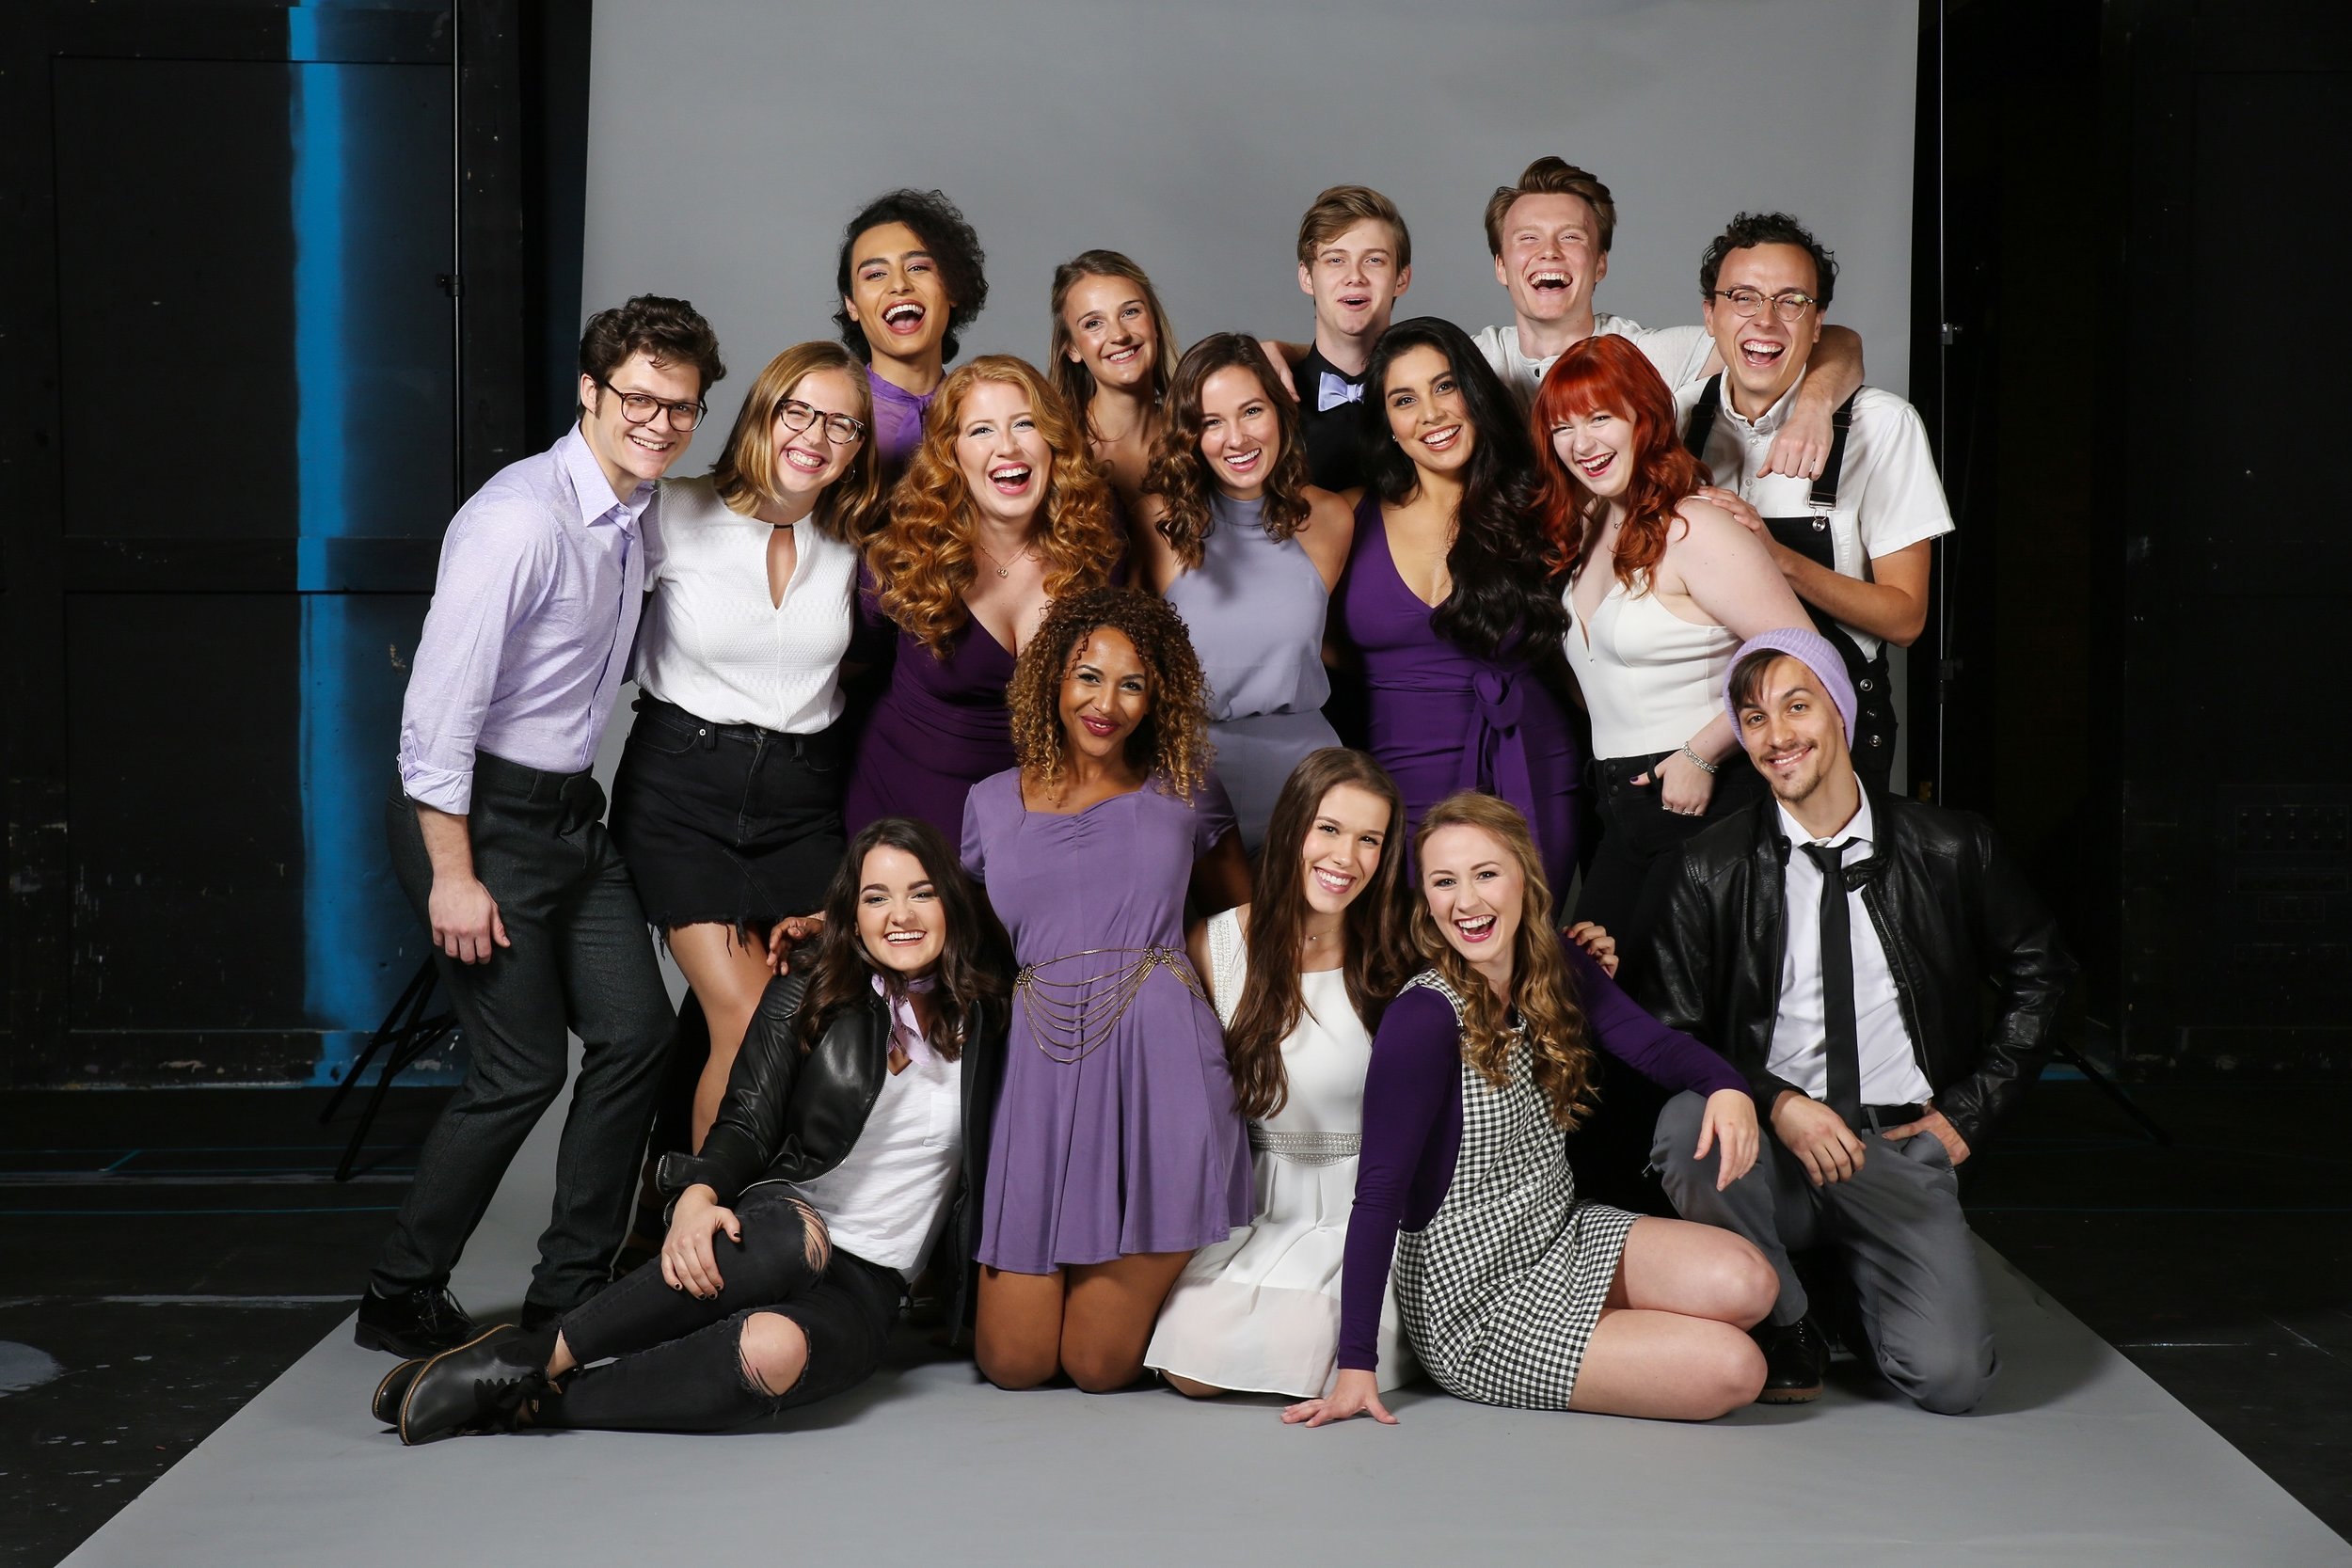 senior showcase - This March, Heather will be showcasing with TCU's senior class in DFW and NYC. Check out the open showcase on March 14th at 5:30 and 7:30 pm at the Studio Theatre at Theatre Row. Click here for more information!